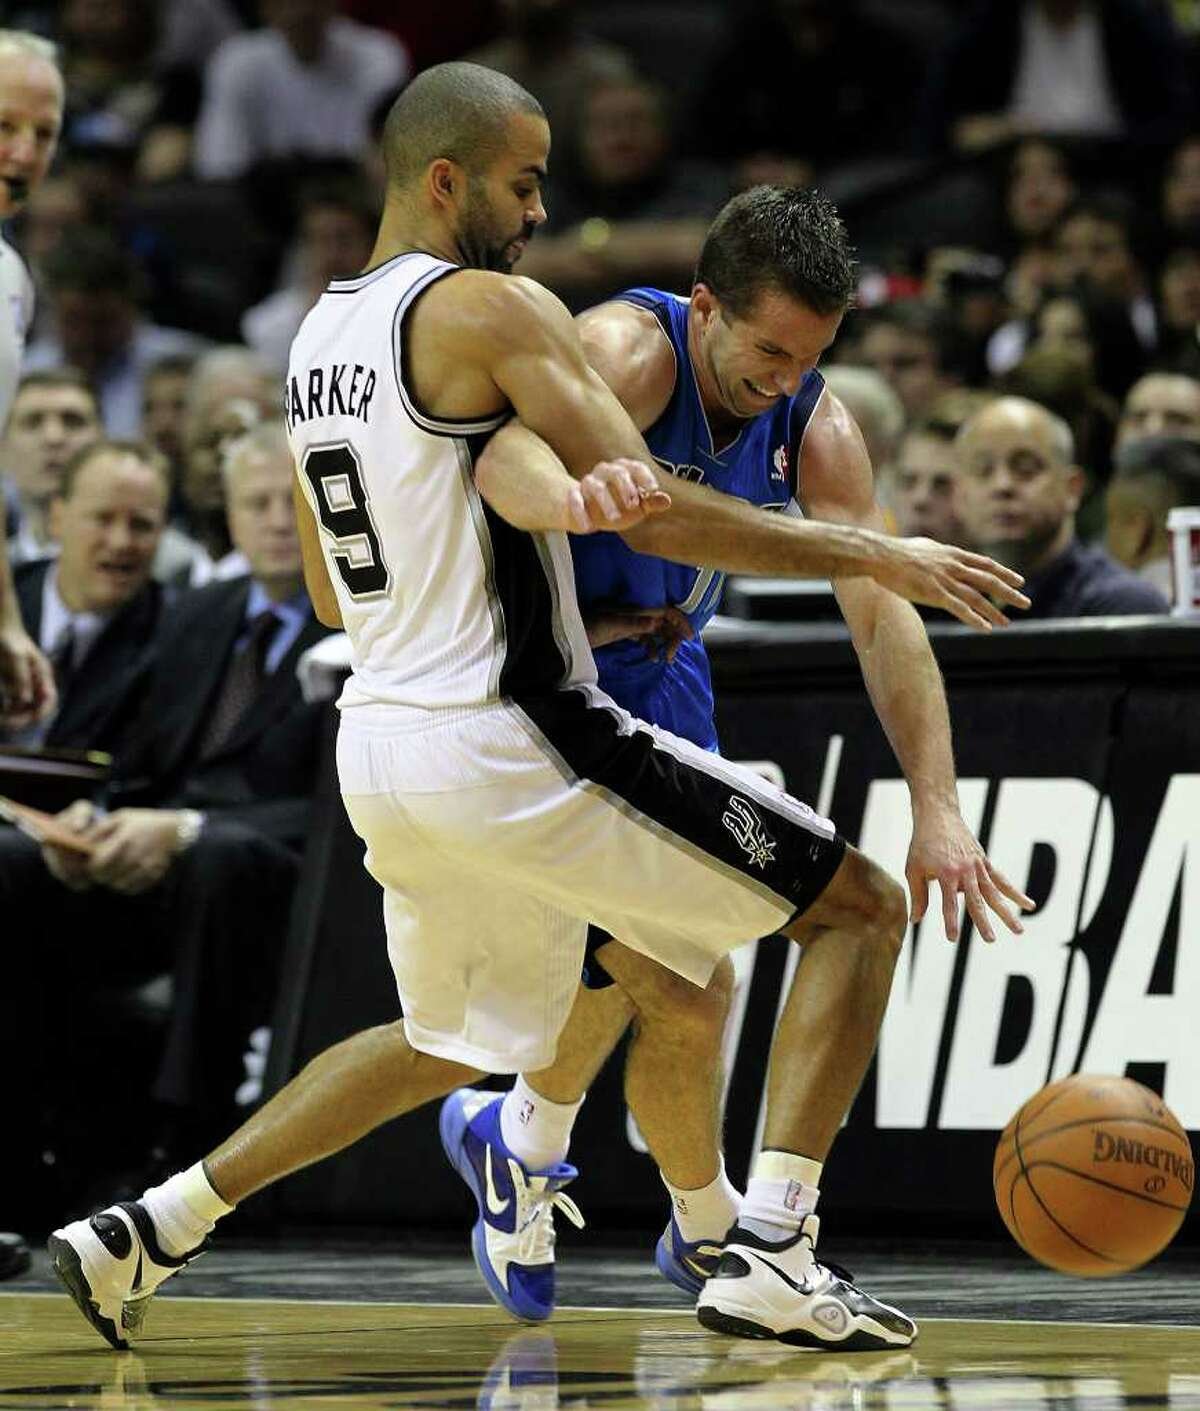 Spurs' Tony Parker (left) blocks Dallas Mavericks' Jose Barea in the second half at the AT&T Center on Friday, Jan. 14, 2011. Spurs defeated the Mavericks, 101-89. Kin Man Hui/kmhui@express-news.net